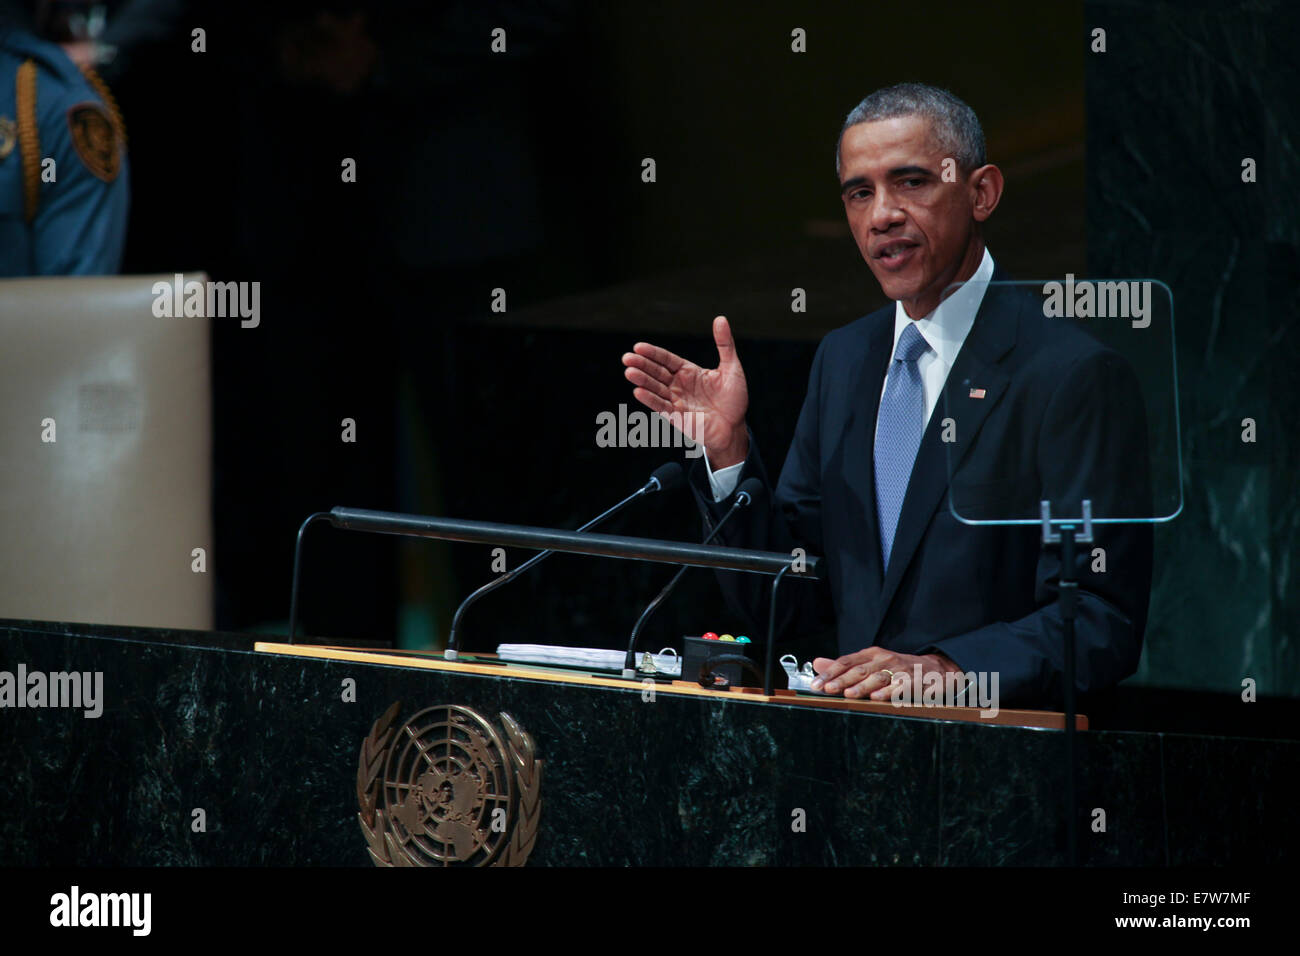 New York, NY, USA. 24th Sep, 2014. United States President Barack Obama addresses the United Nations 69th General Stock Photo